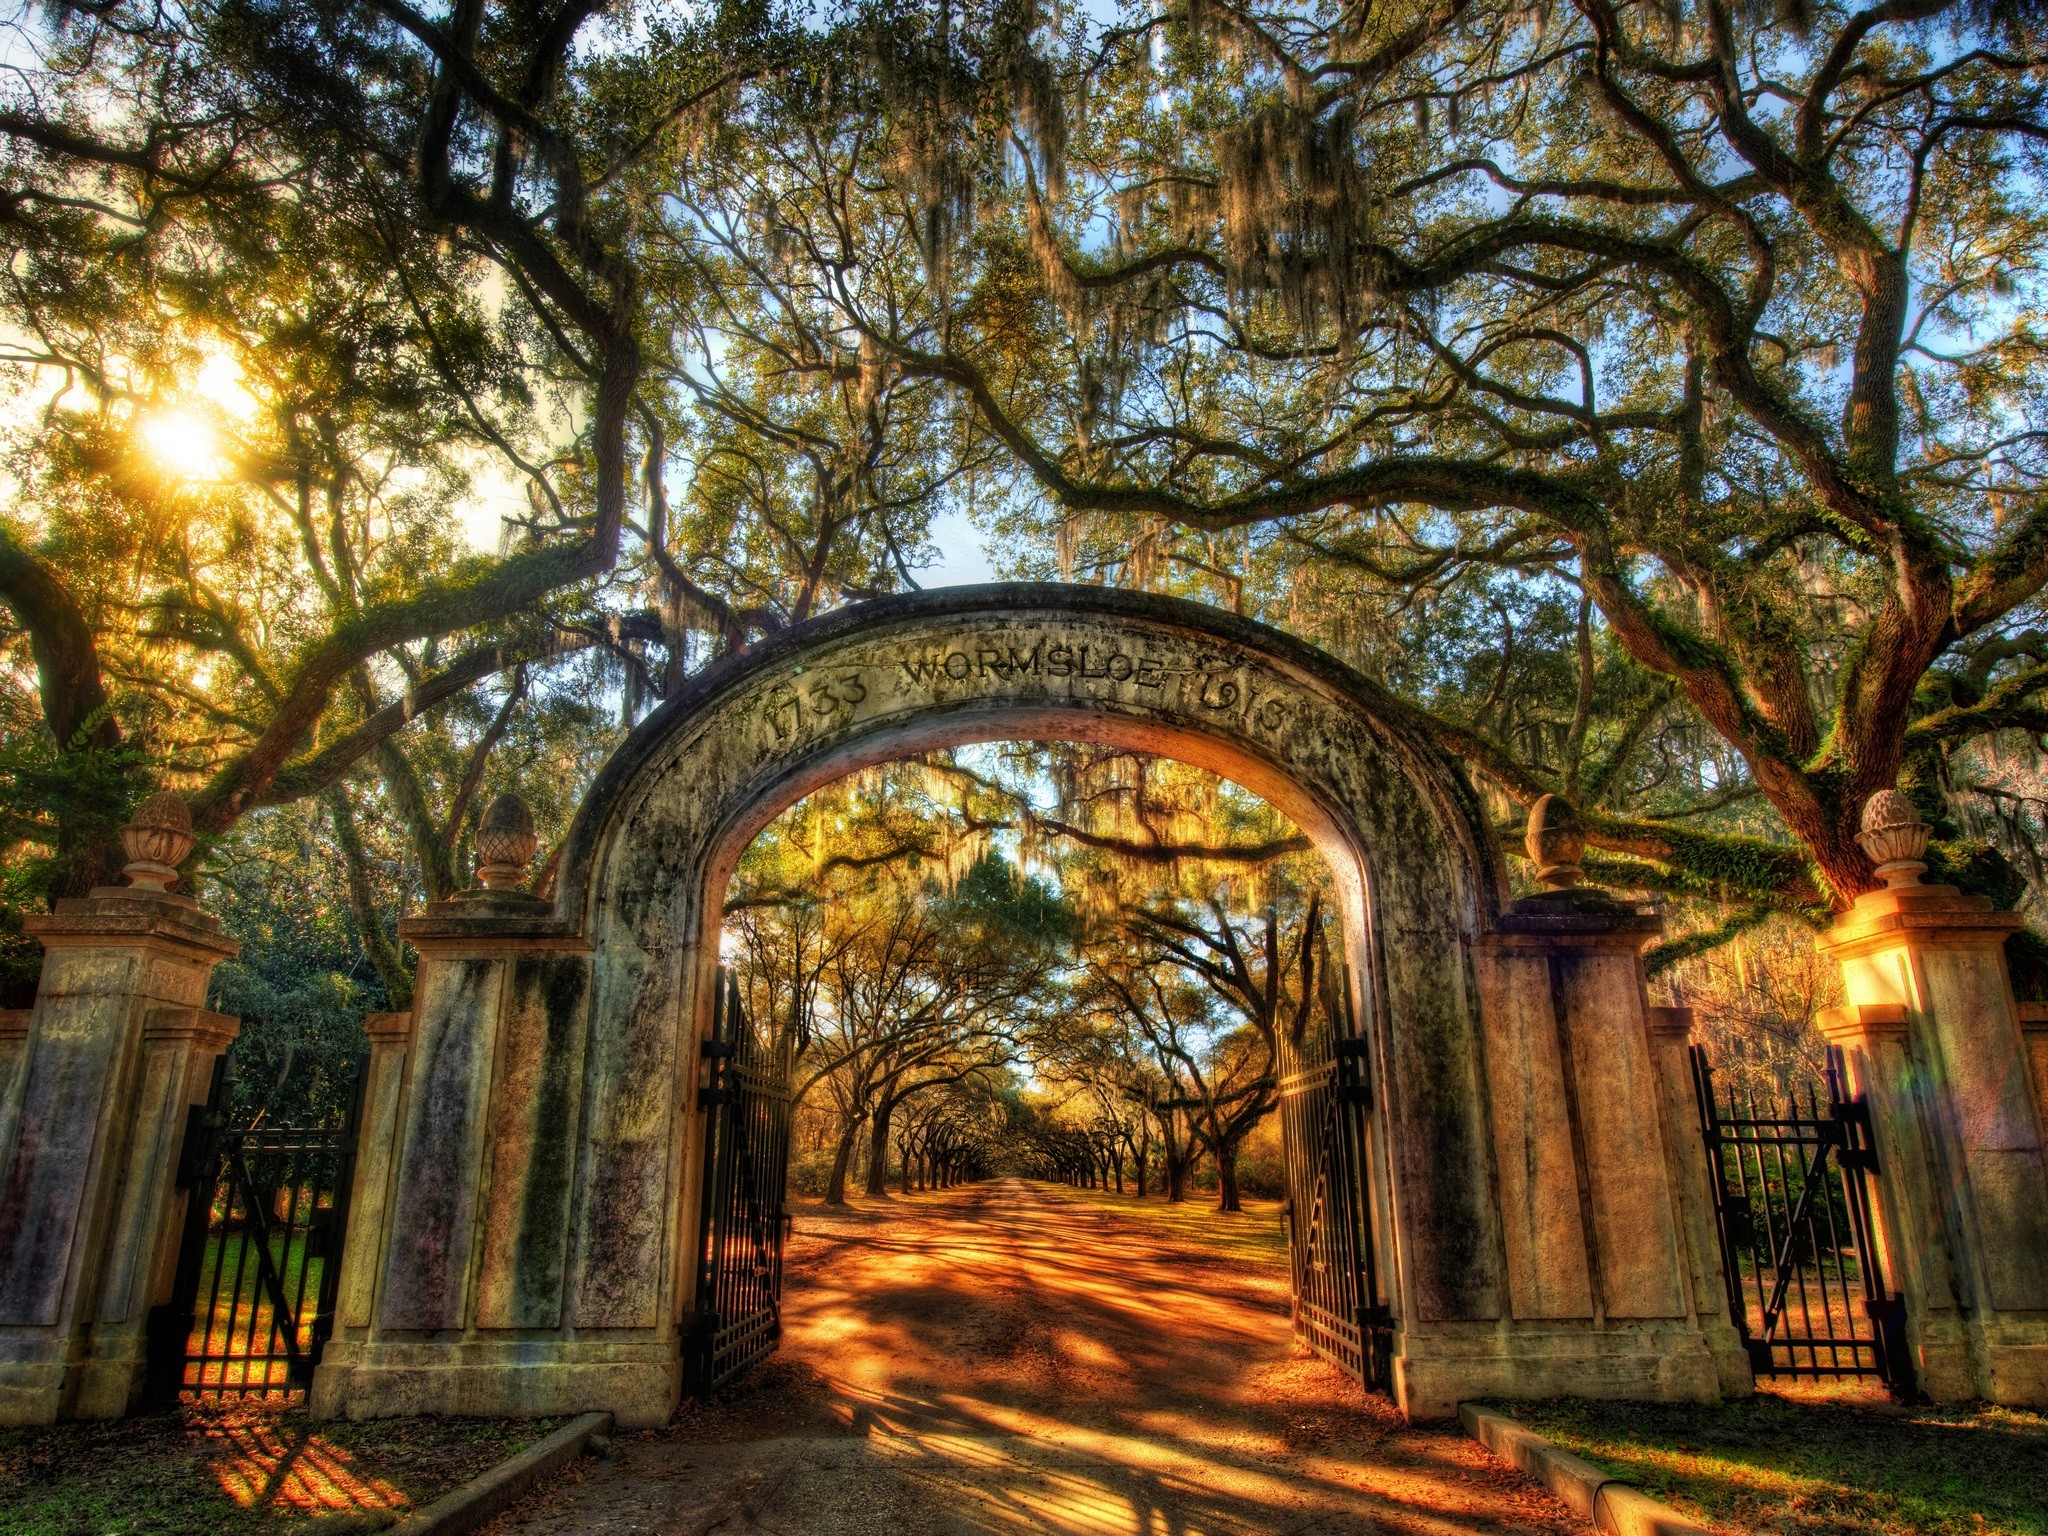 Georgia HDR photography arch fences gate- Wallpaper 2048x1536